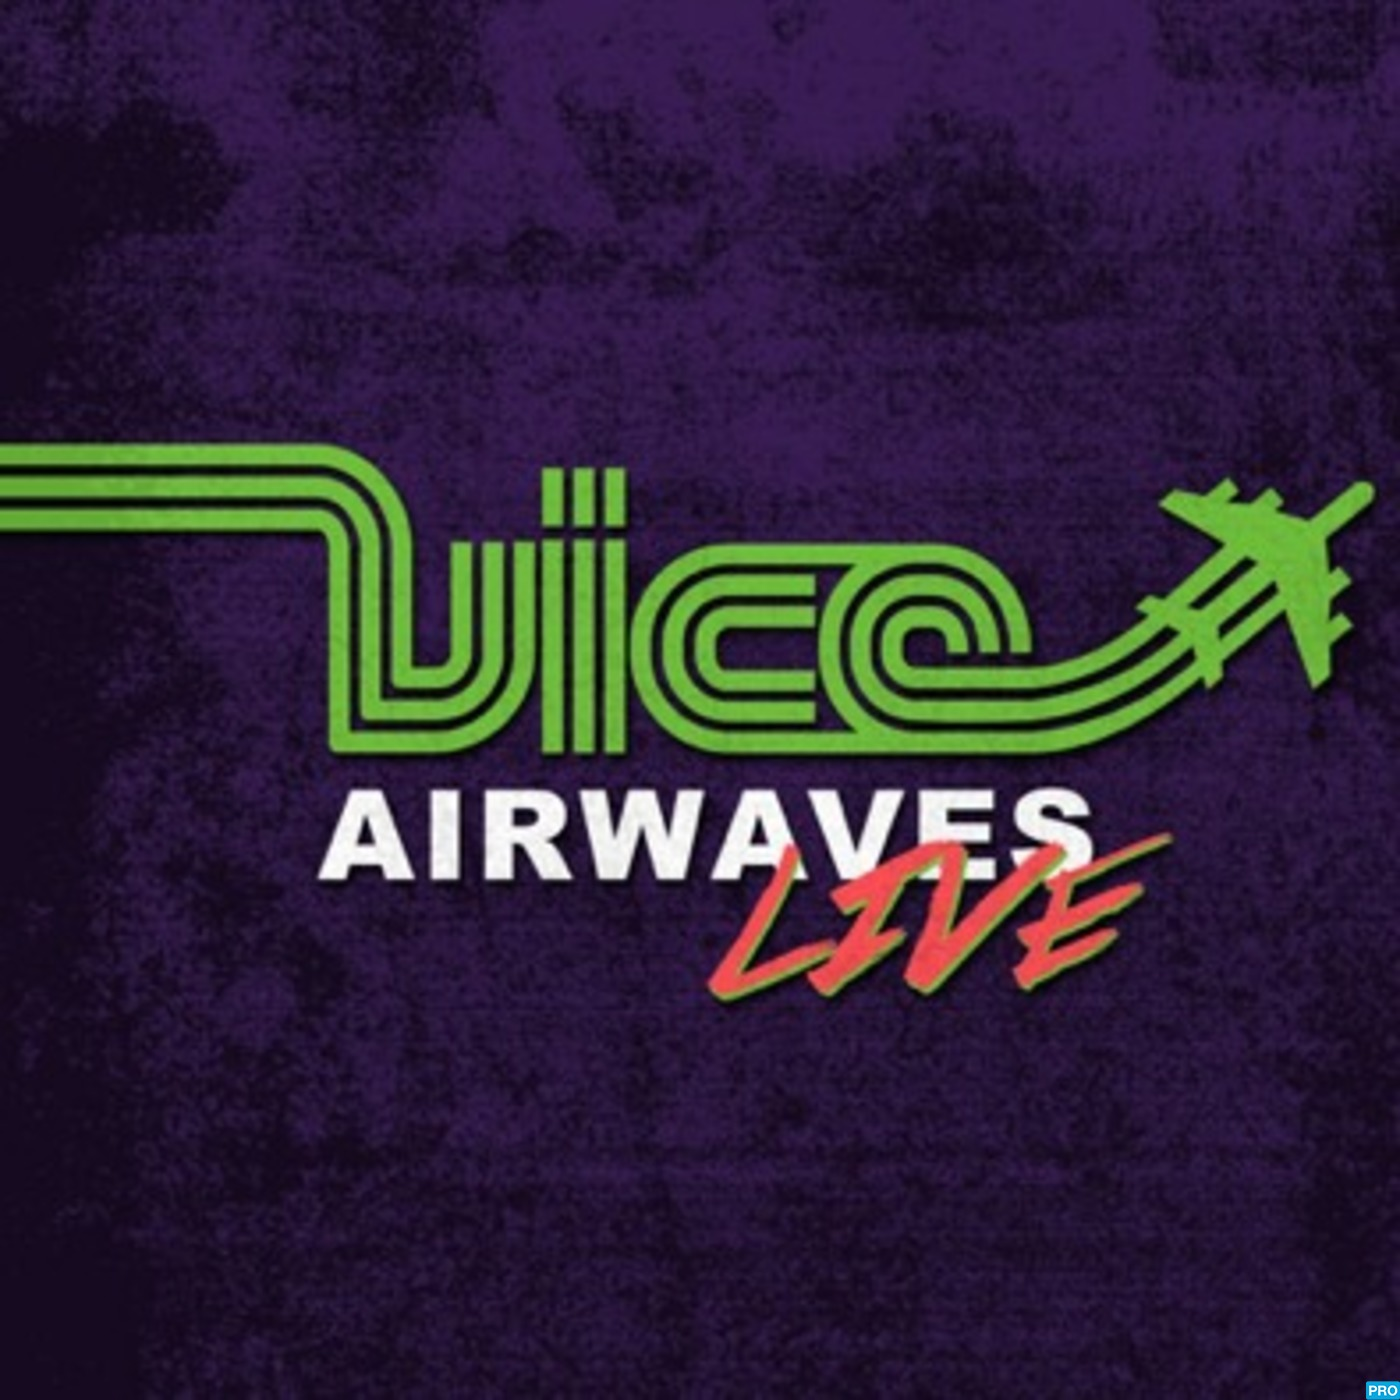 VICE AIRWAVES LIVE